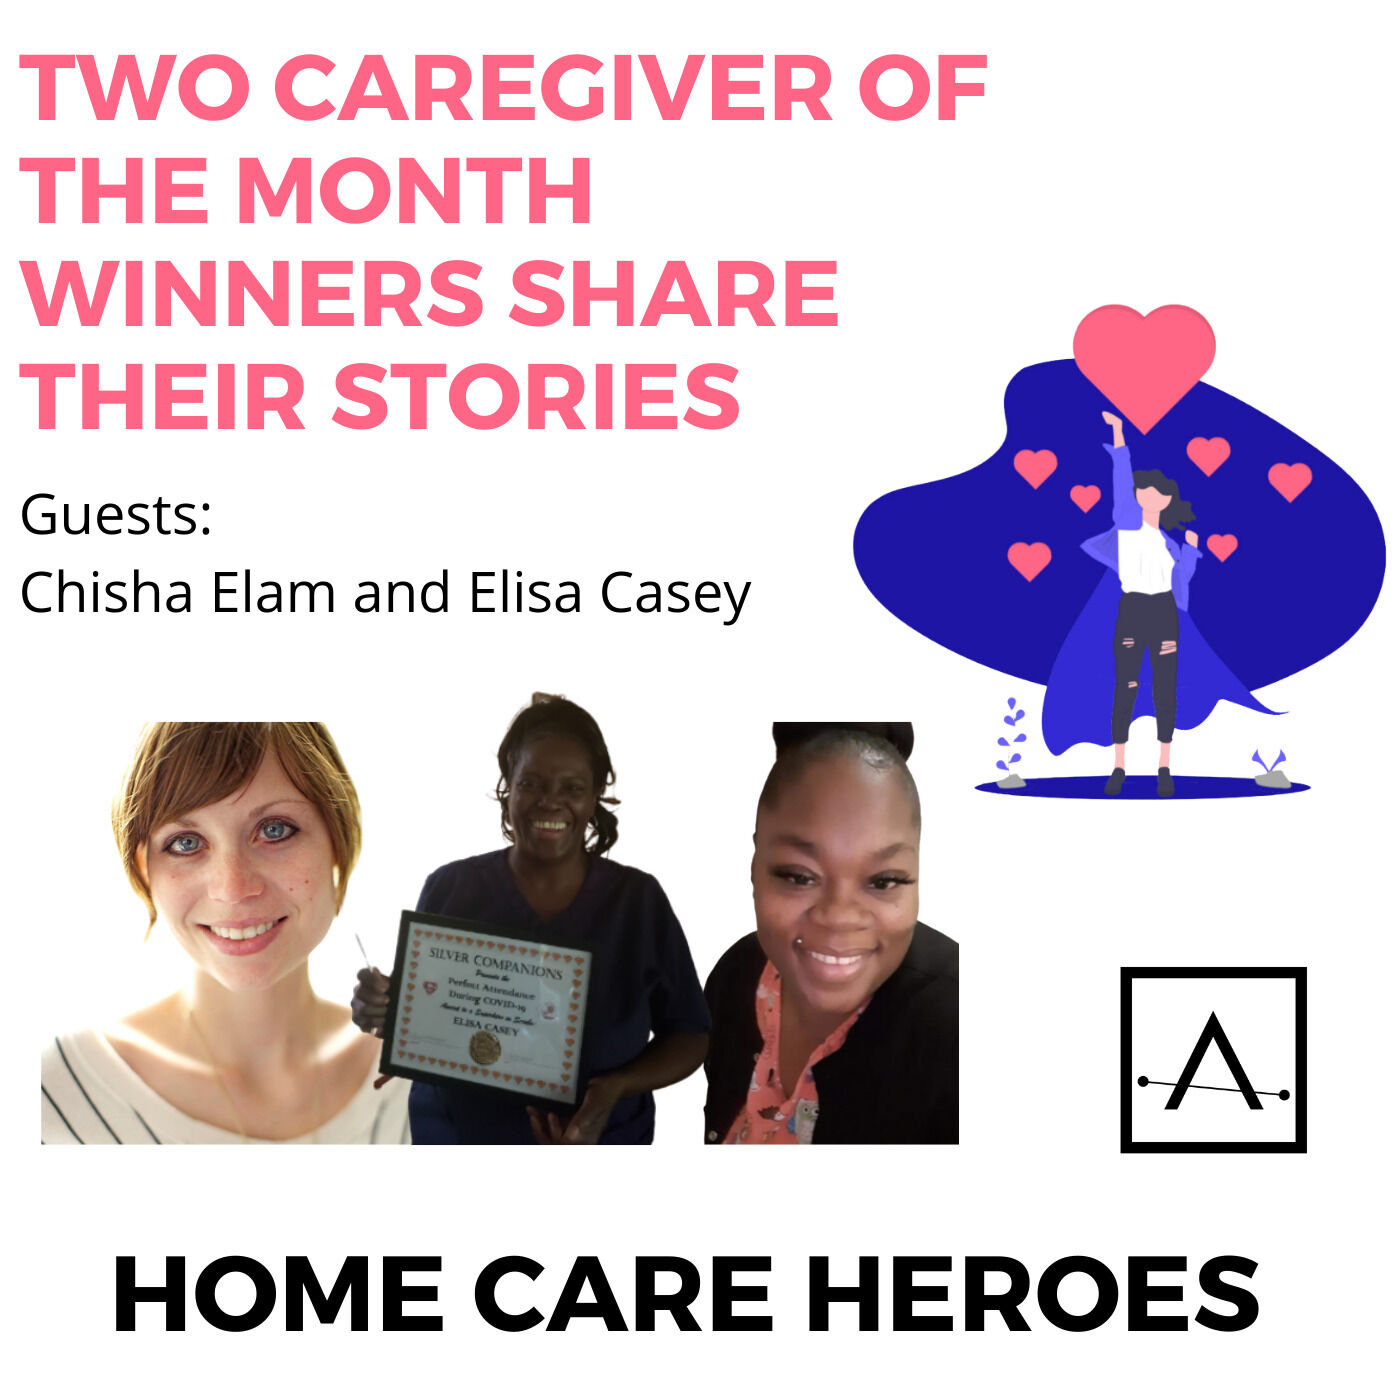 Two Caregiver of the Month Winners share their stories.